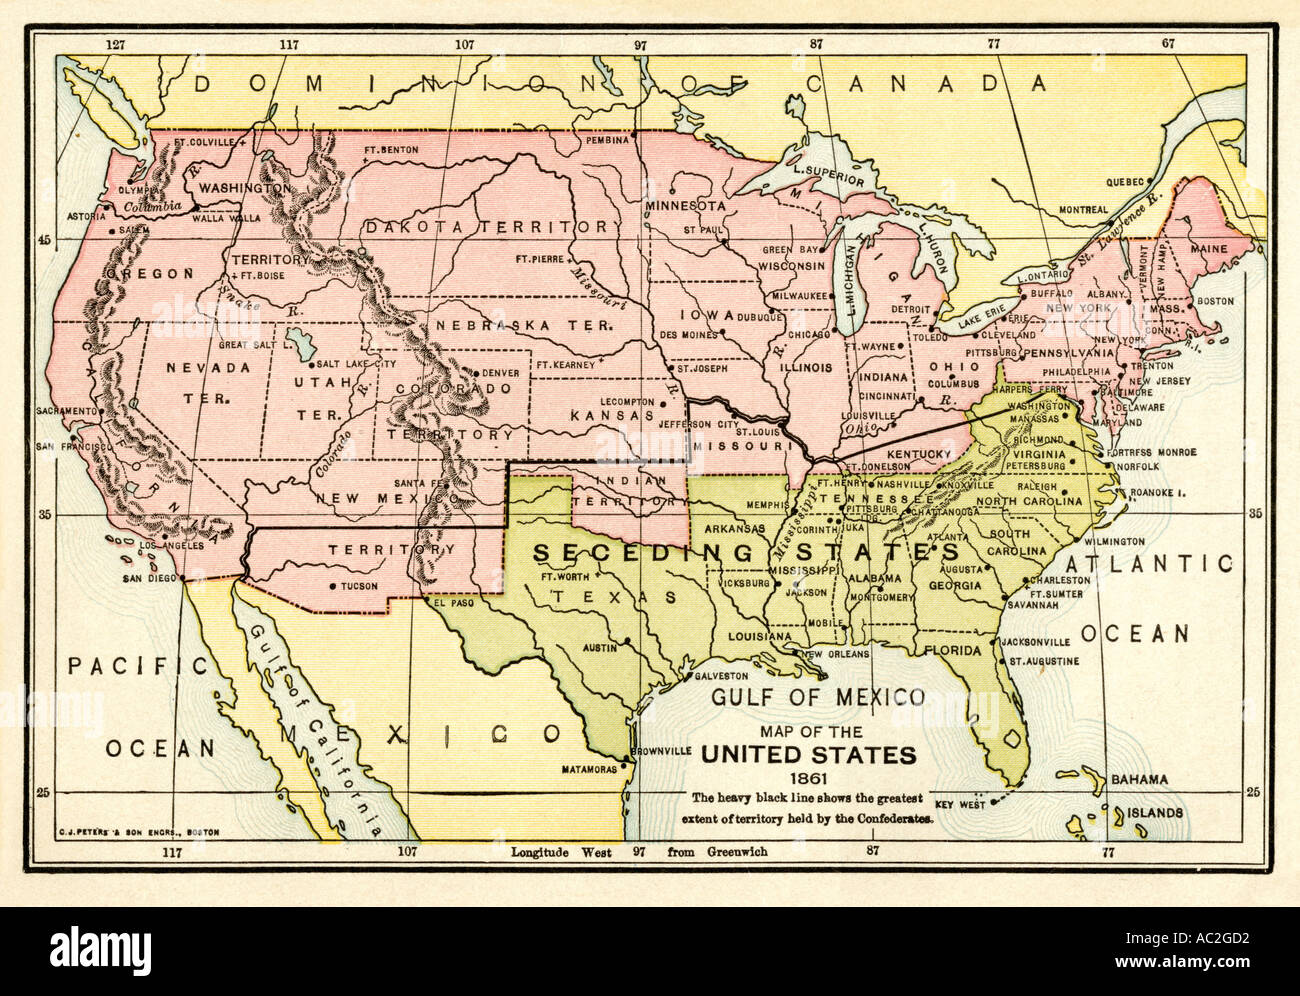 1861 United States Map.Map Of The United States In 1861 At The Start Of The Civil War